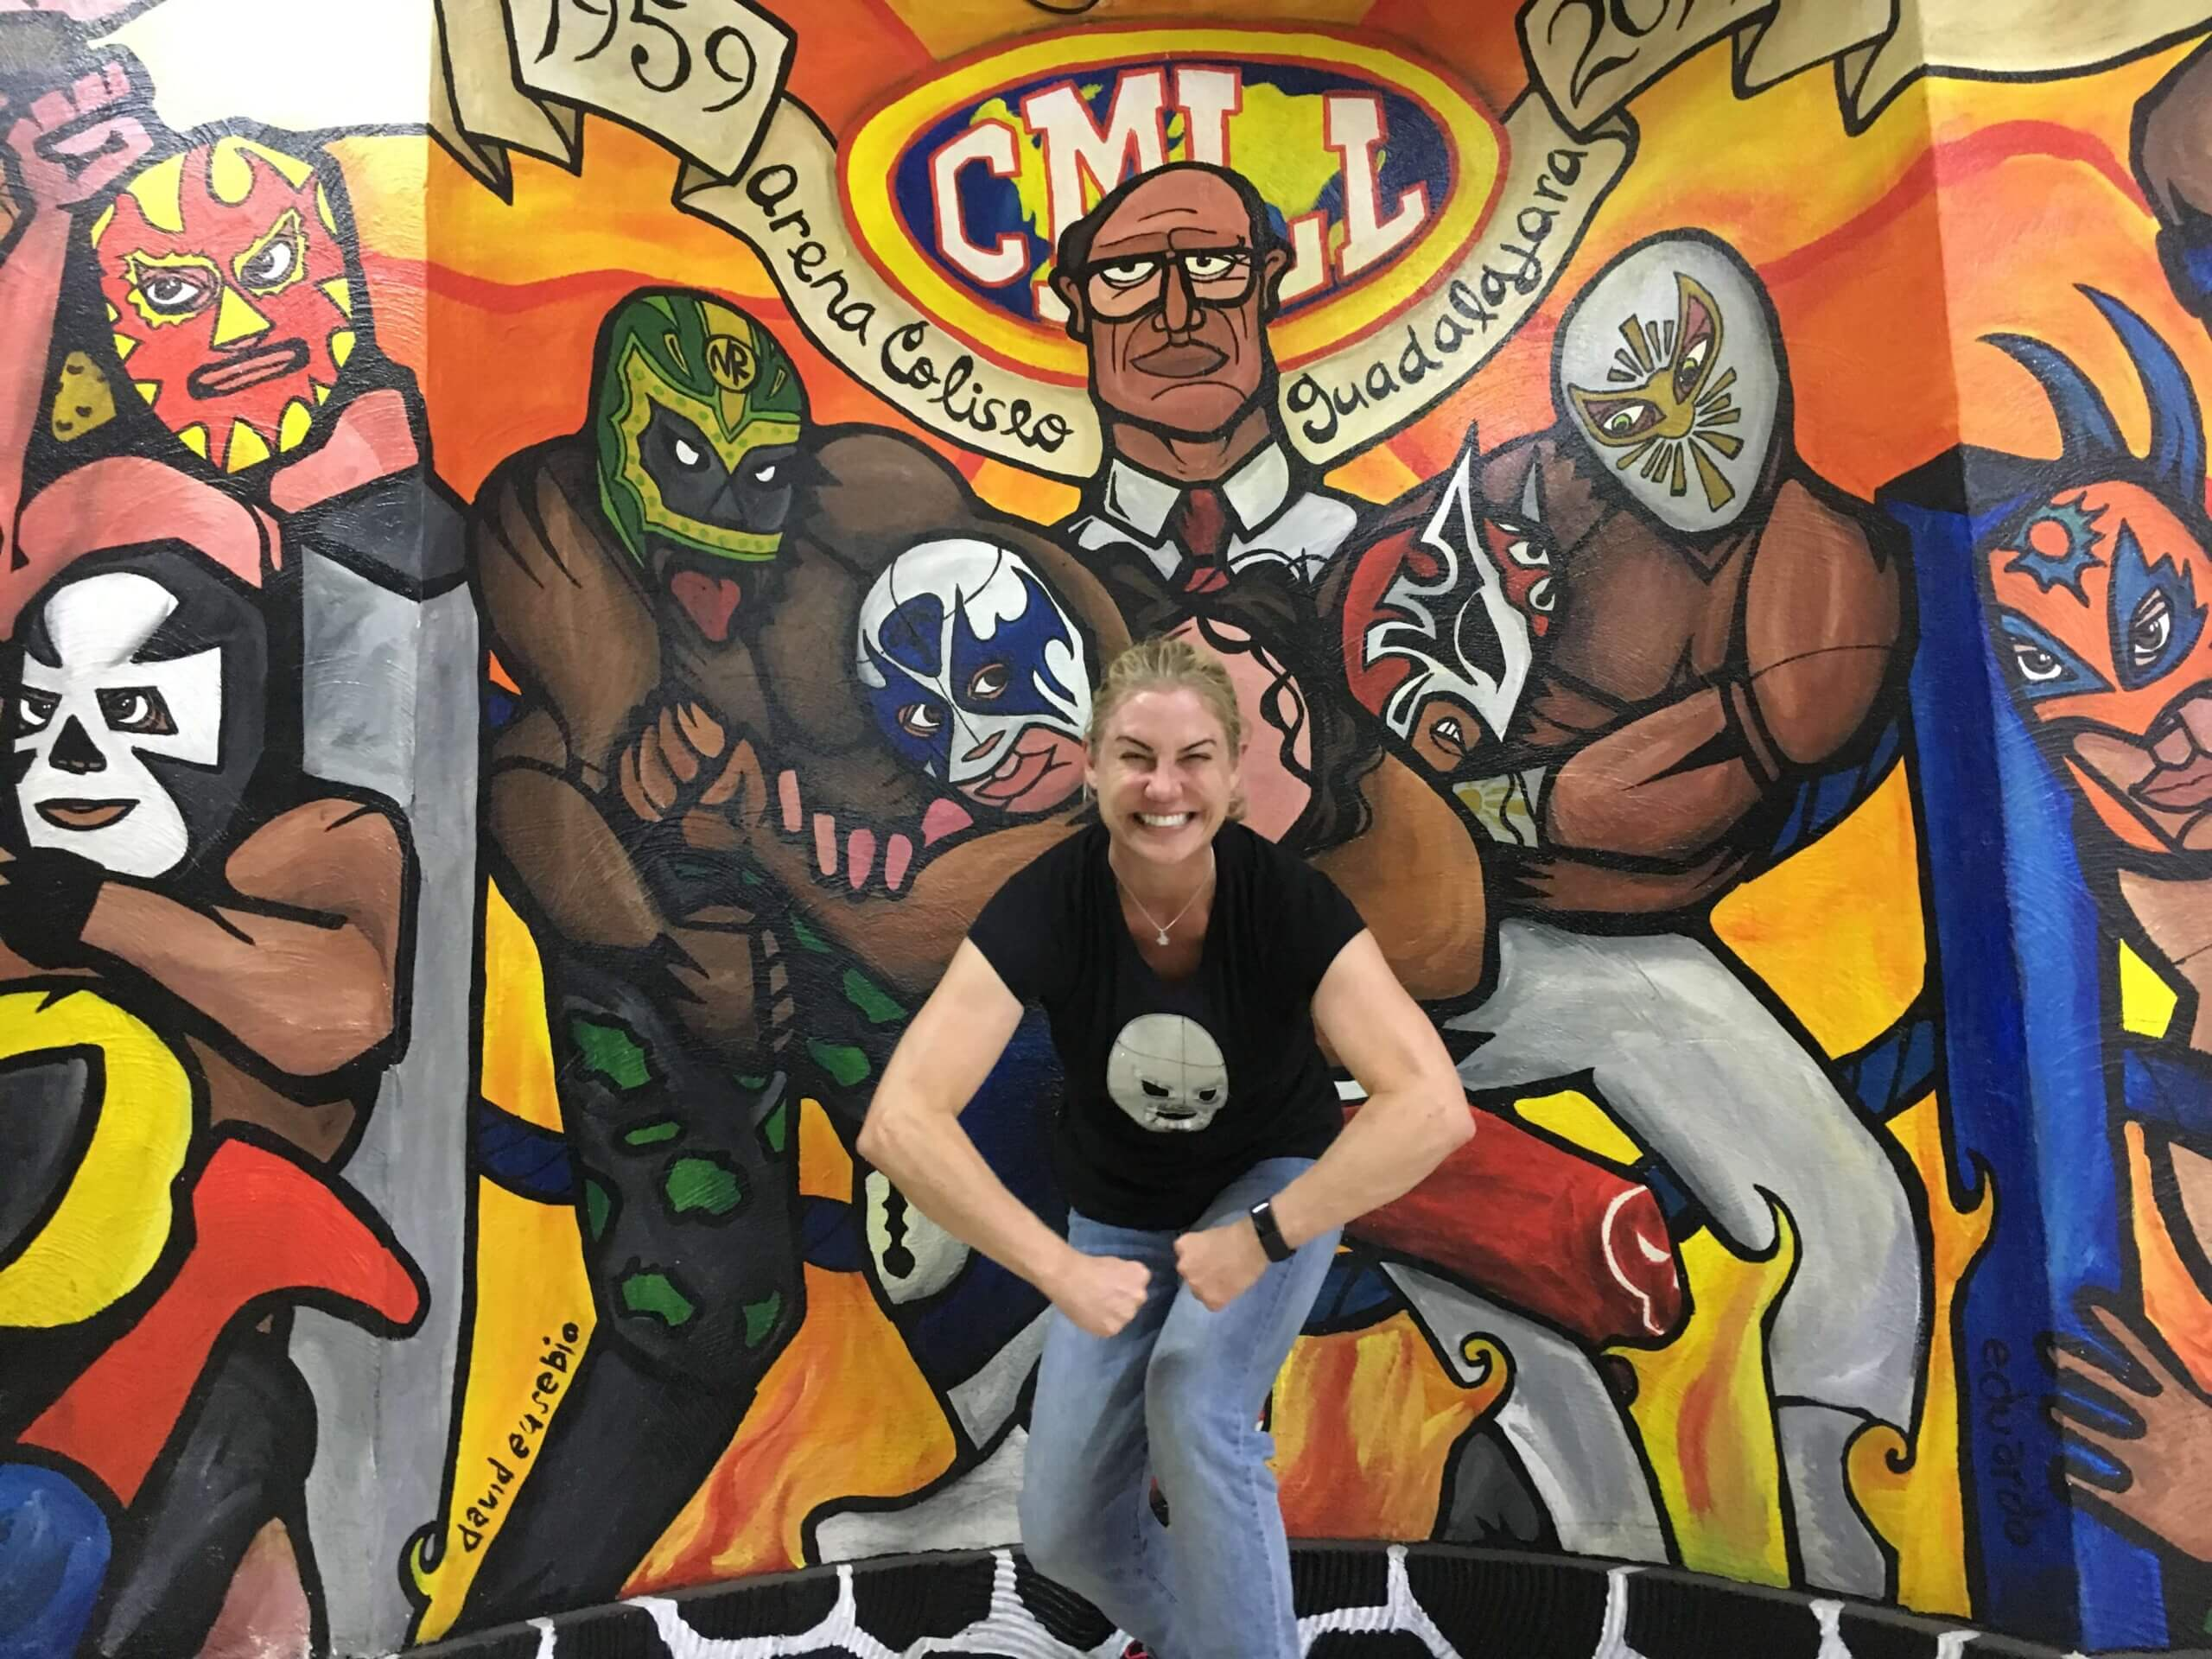 Allison Nevins in her Santo shirt at lucha libre.